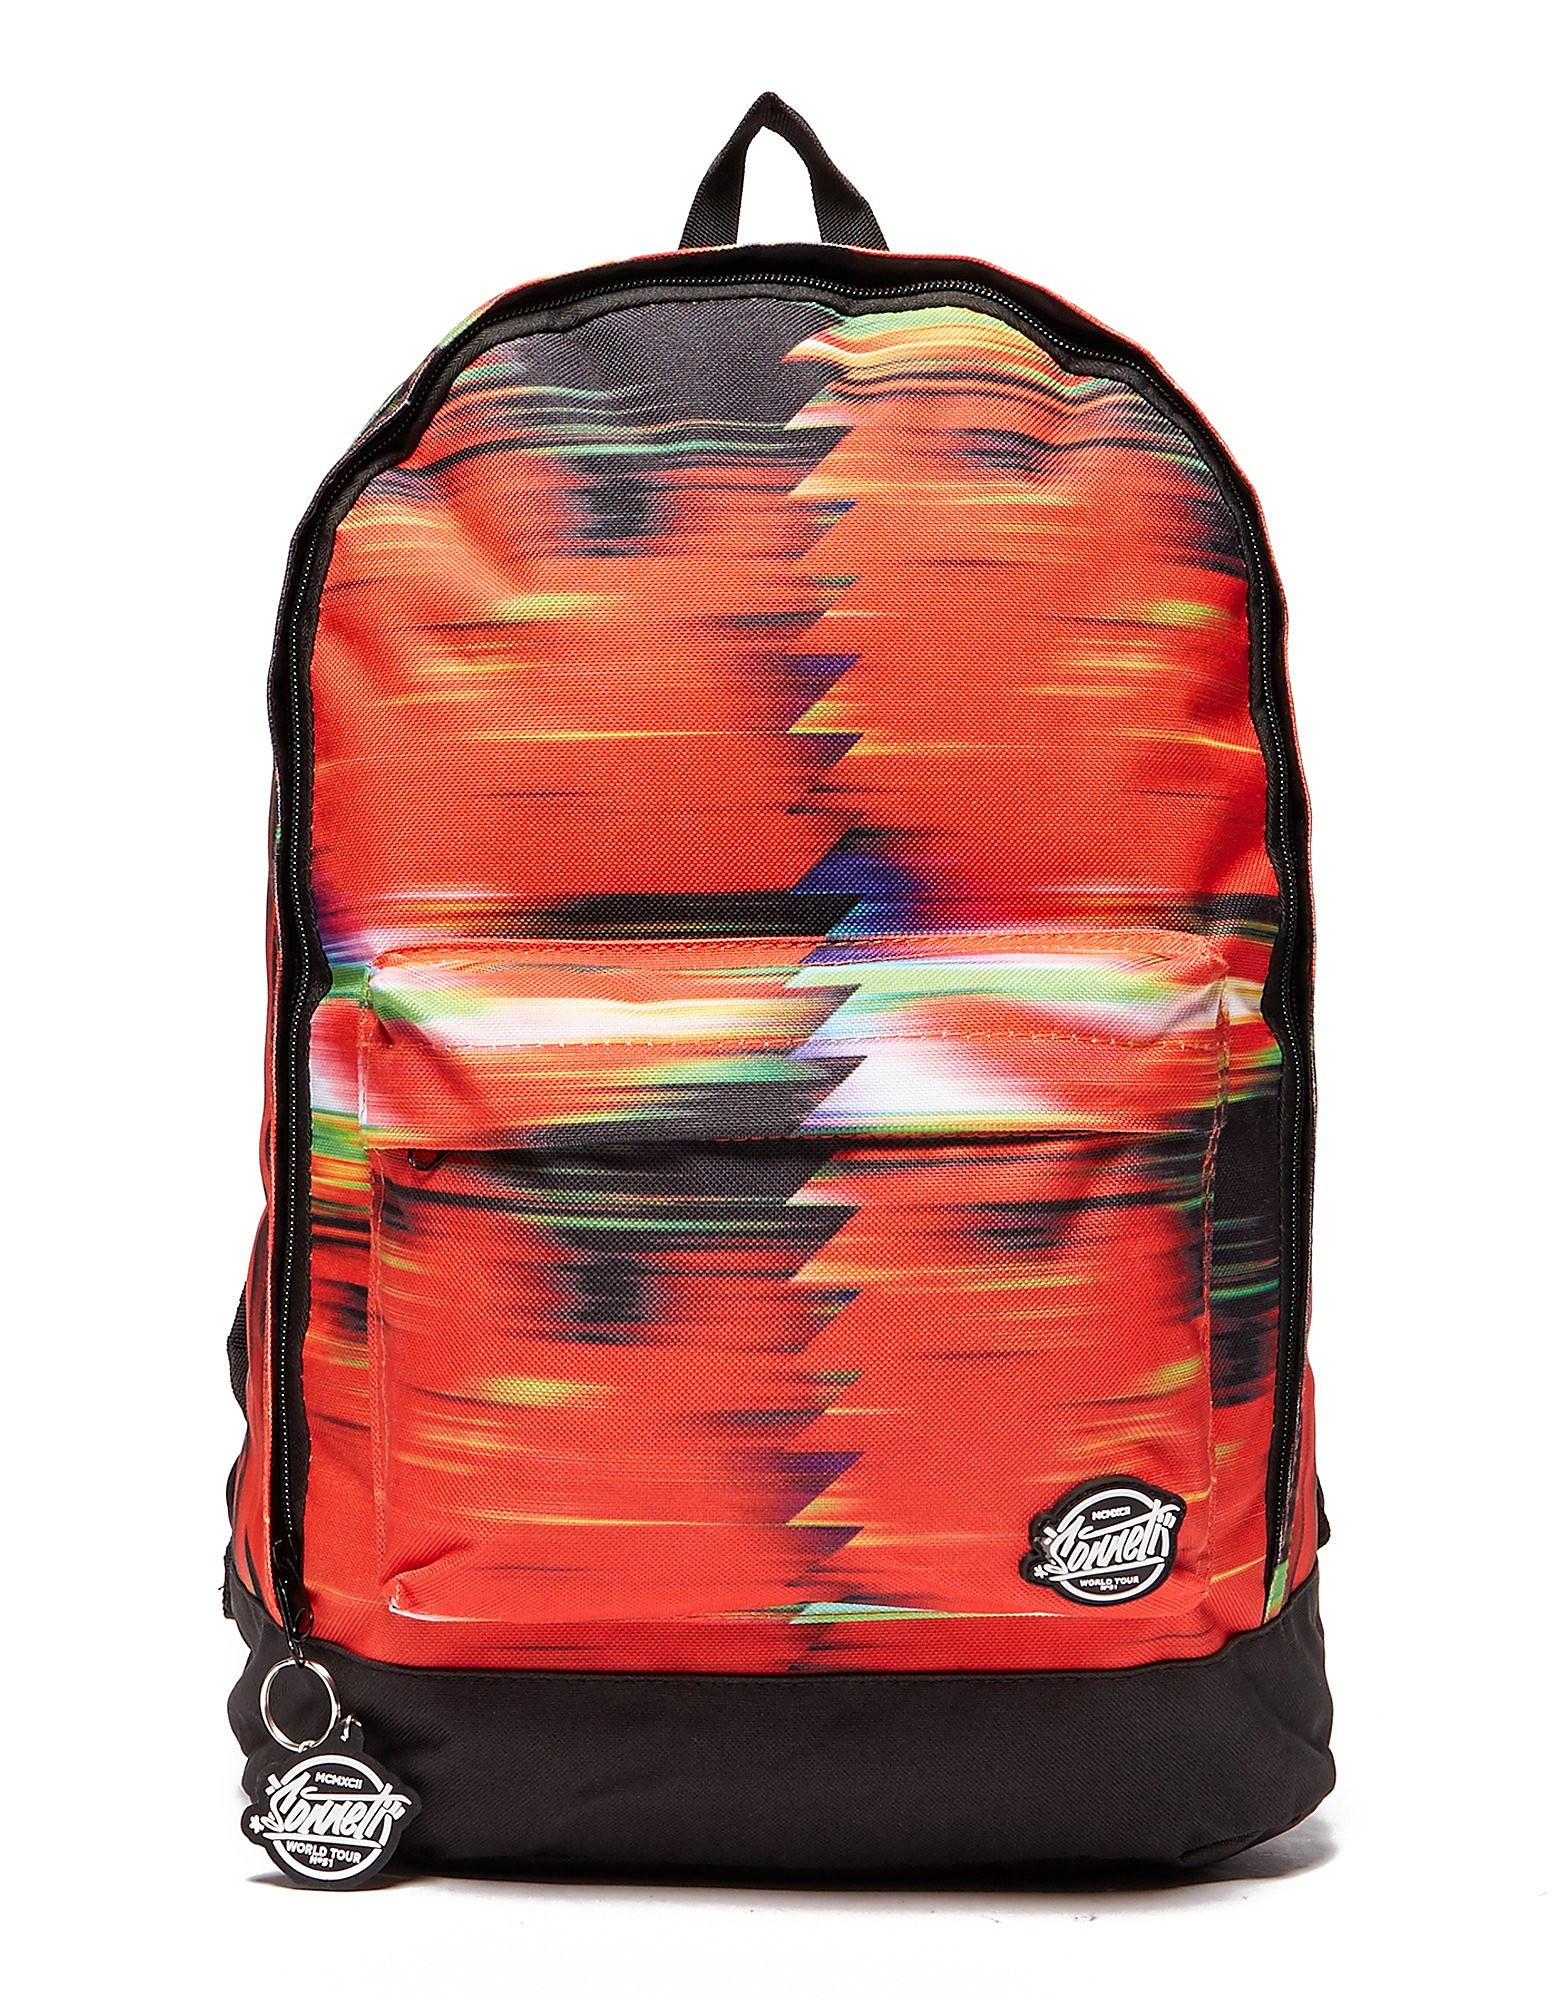 Sonneti Zagger Backpack